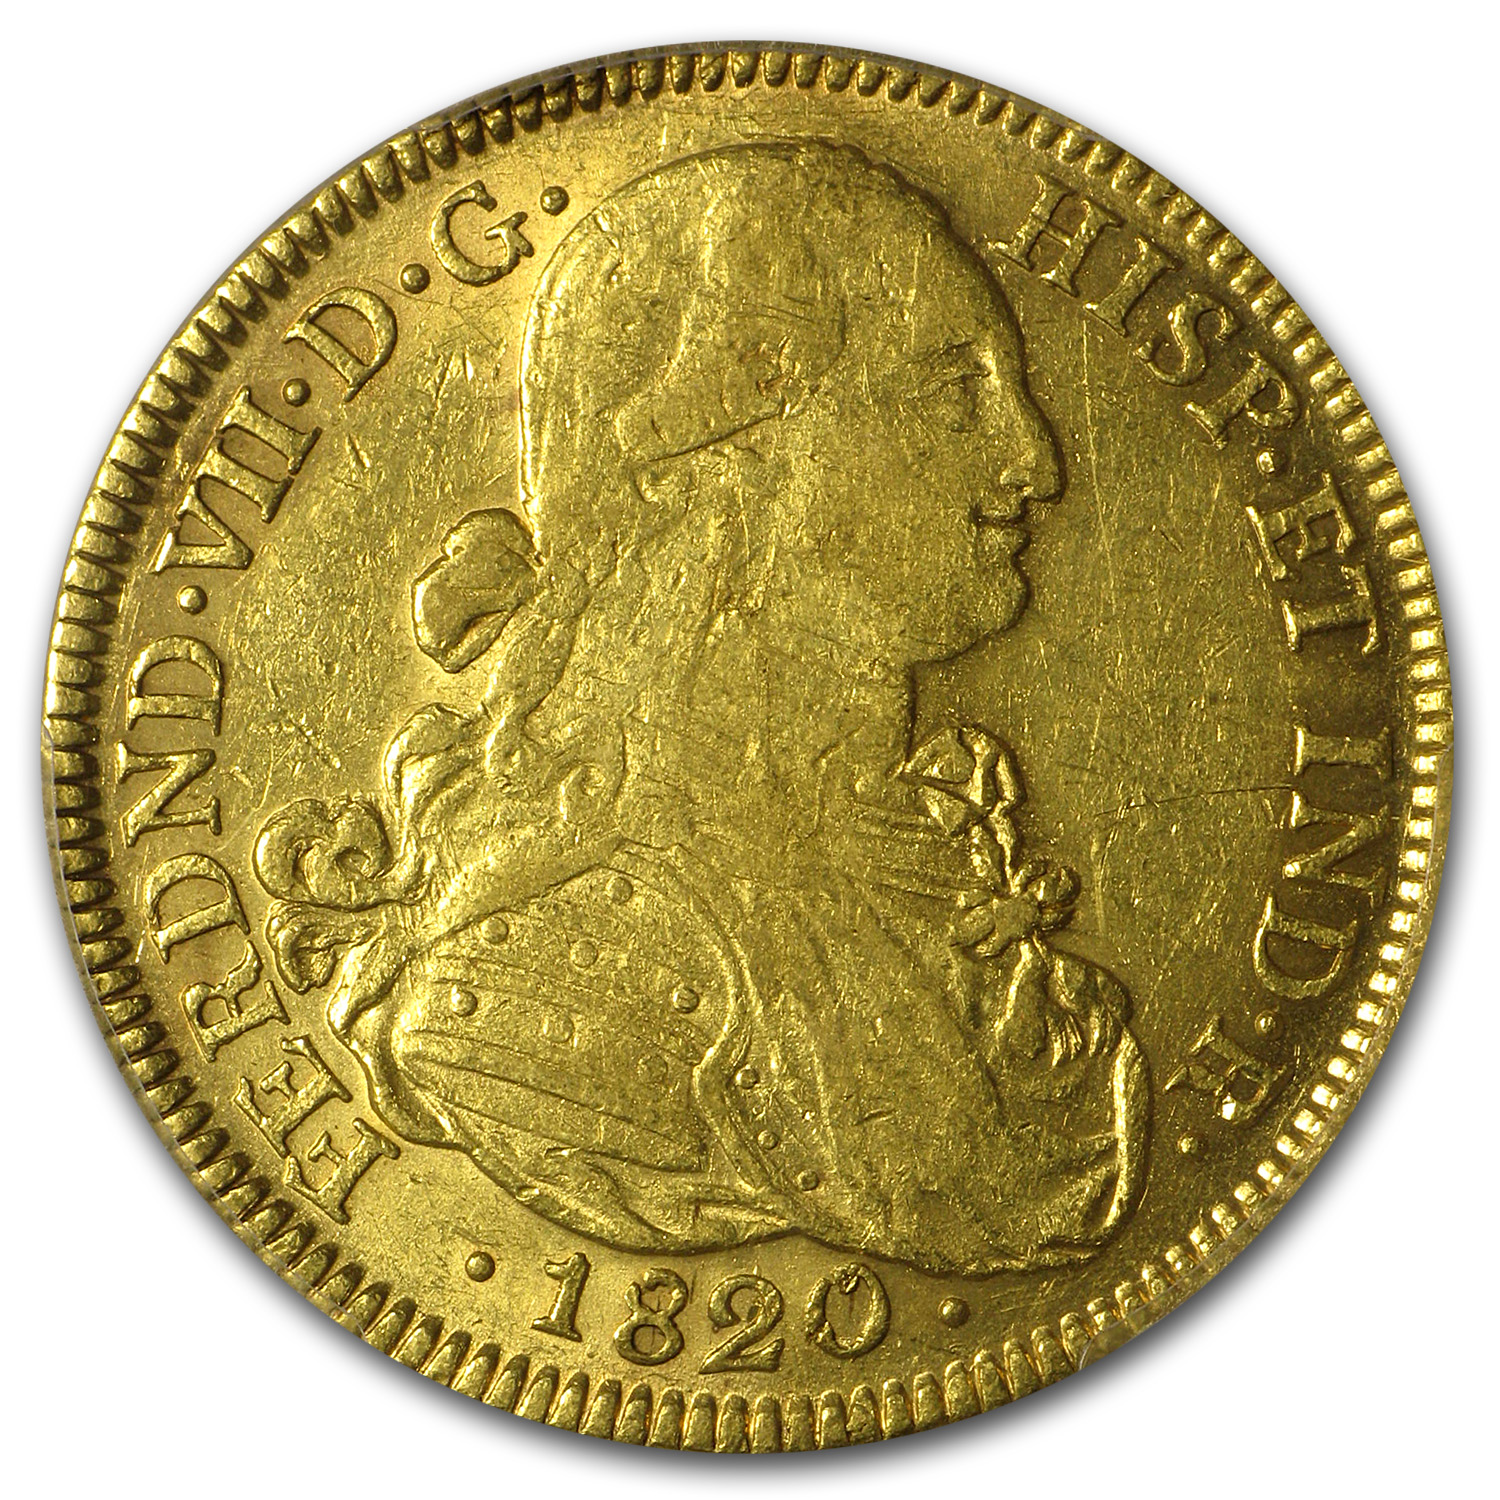 Colombia 1820 NR-JF Gold 8 Escudo Ferdinand VII AU-55 PCGS